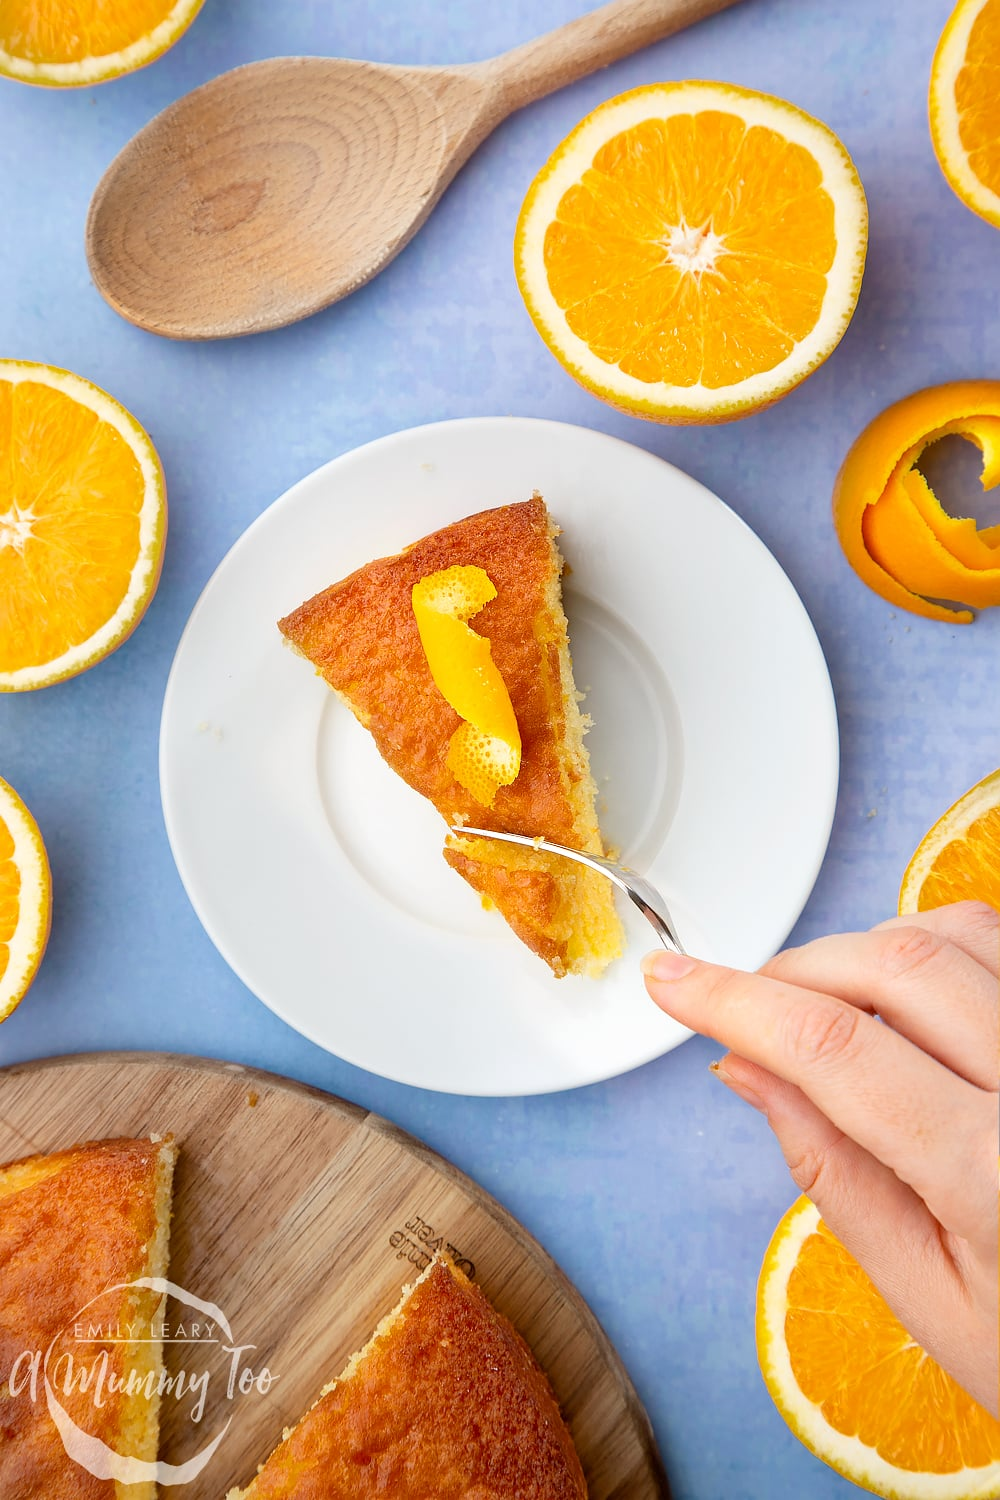 A slice of orange drizzle cake served on a small white plate. A curl of orange peel sits on top of the cake. A hand holding a cake fork cuts into the cake.